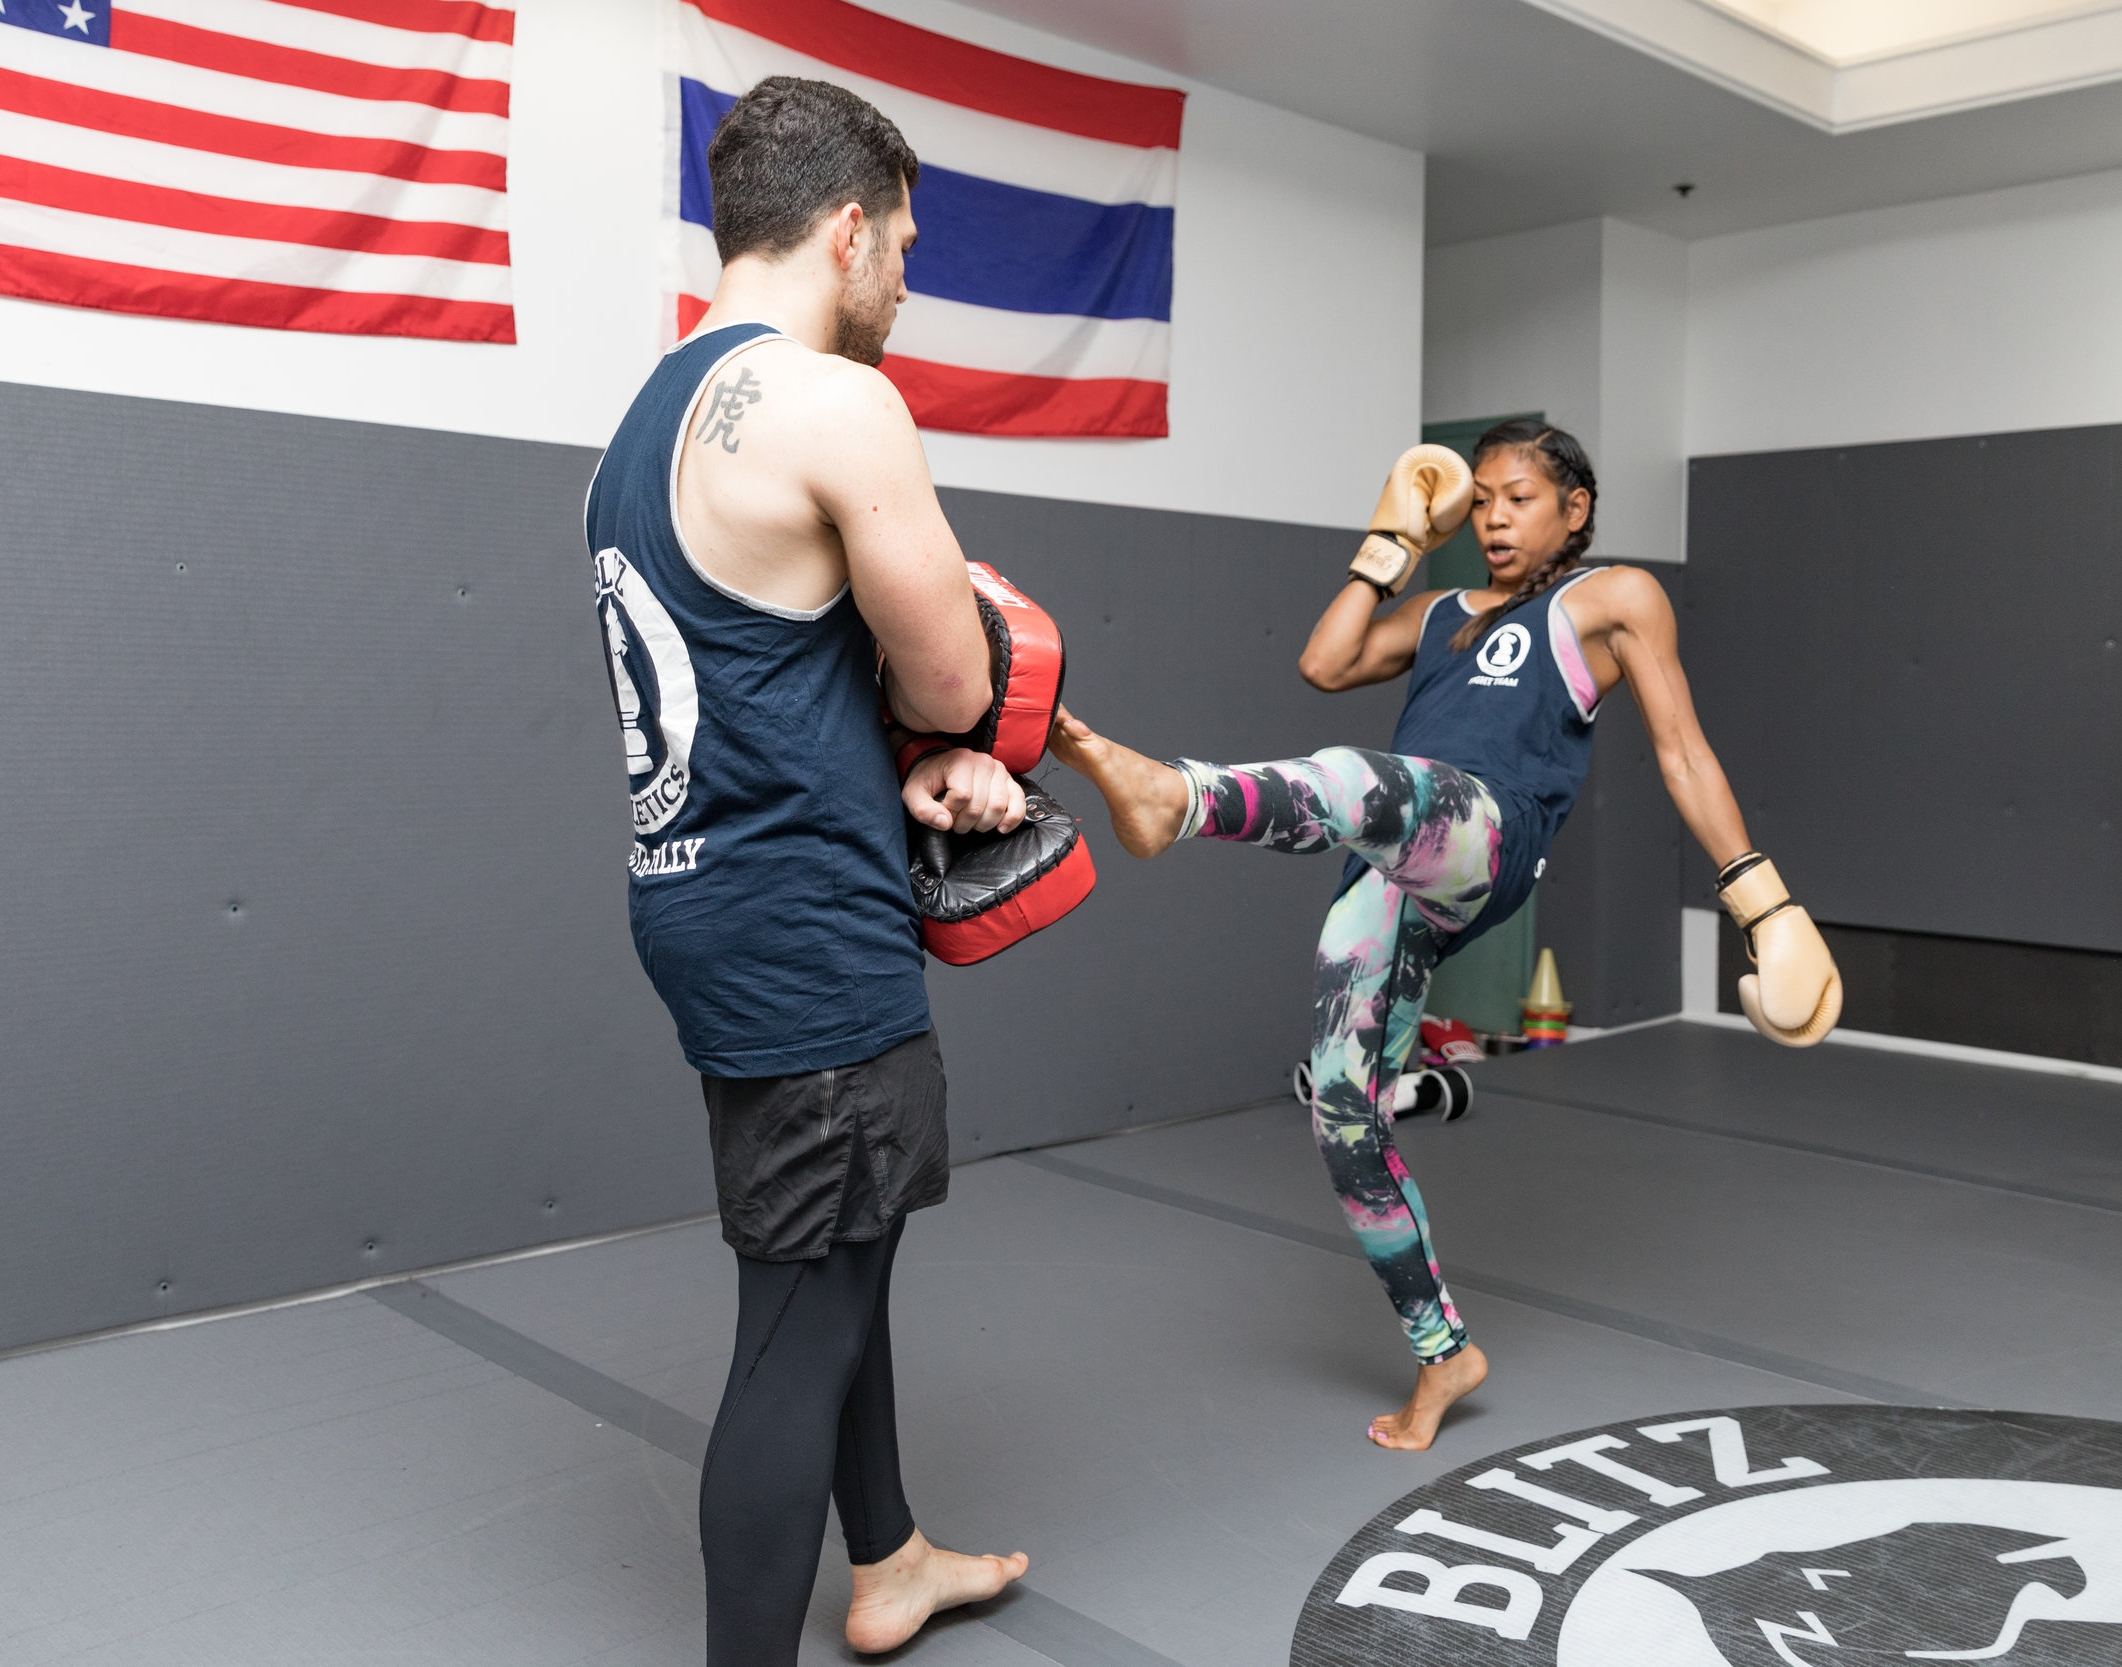 Muay Thai Kickboxing - Muay Thai Kickboxing (also known as the Art of Eight Limbs) is a high paced style of fighting brought to the United States from Thailand. Muay Thai combines the use of hands, knees, elbows and legs to throw powerful strikes (hence the eight limbs).All of our classes are planned to teach exciting martial arts techniques that have been proven effective in both self defense scenarios and competition.